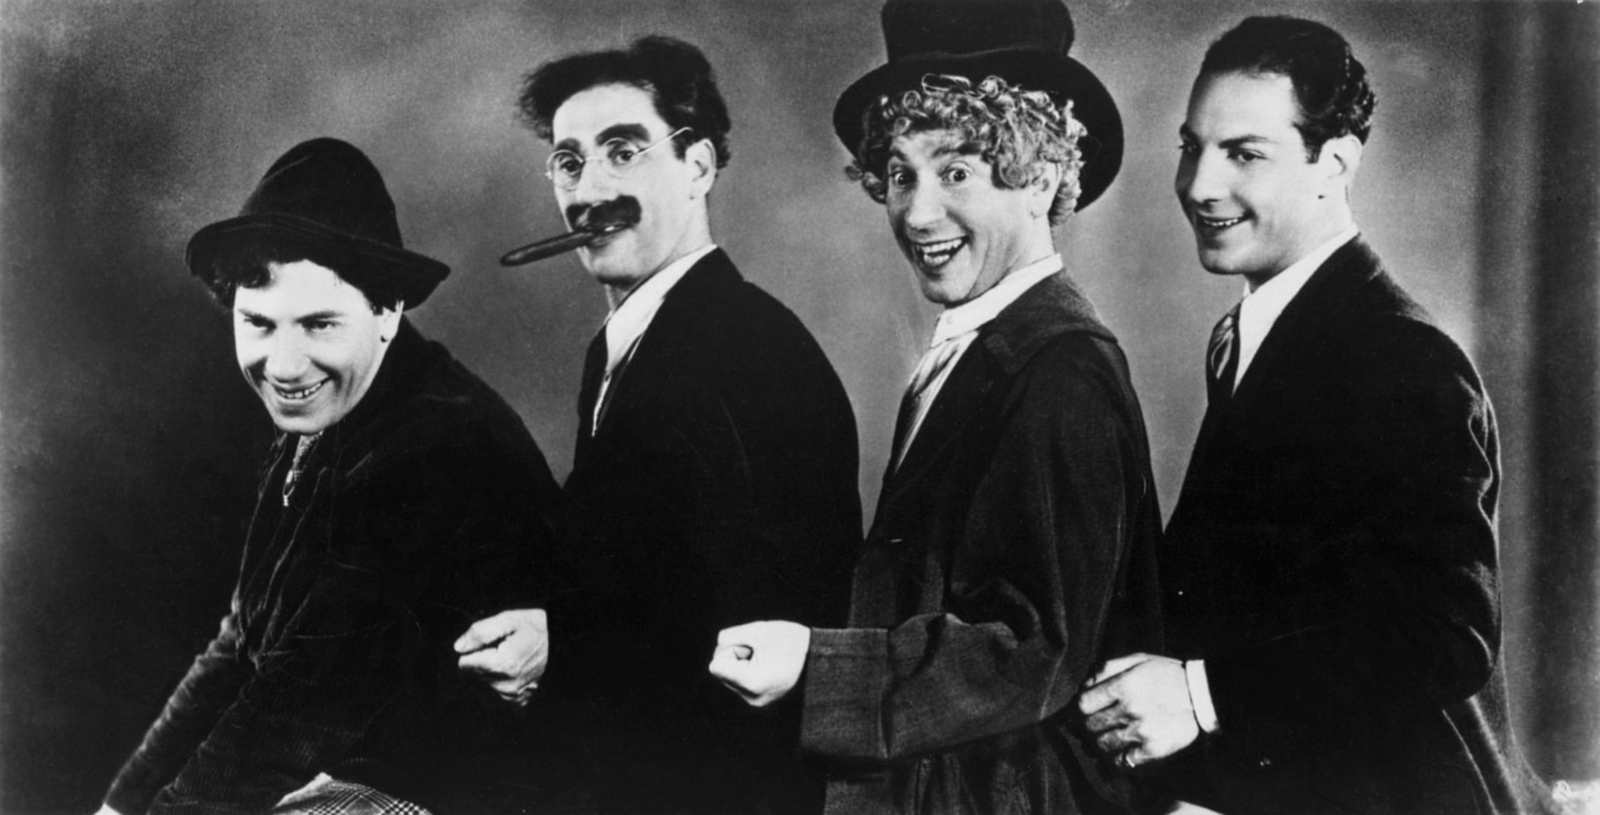 marx brothers desktop wallpaper